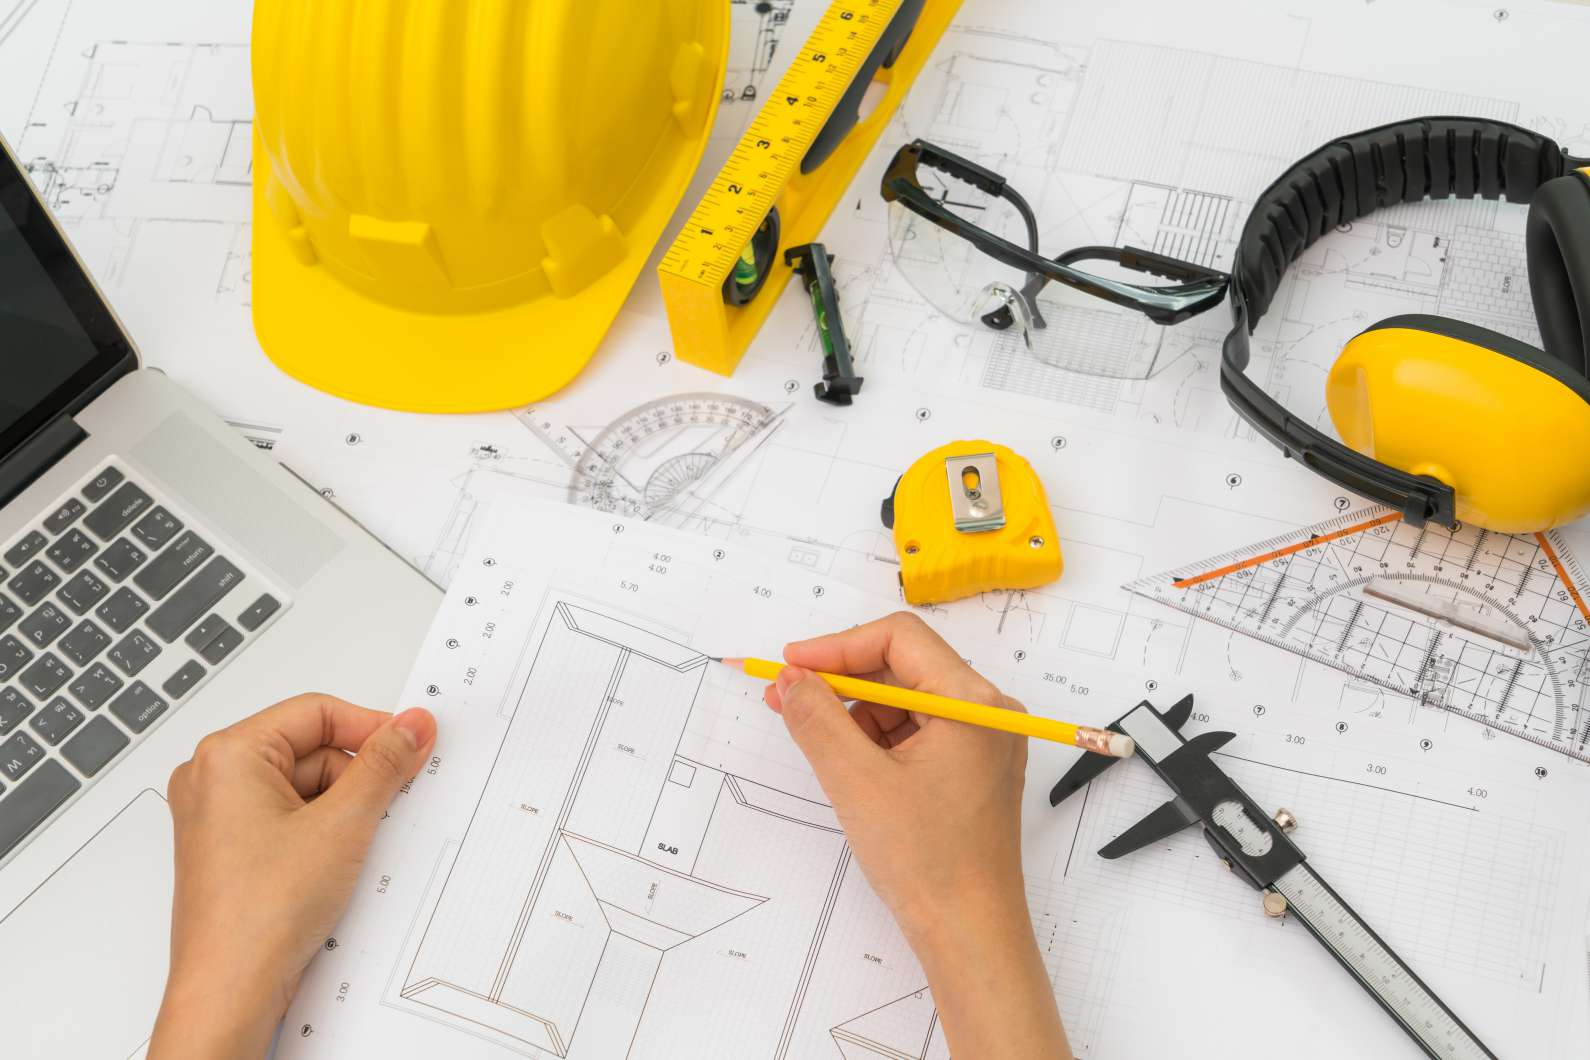 Hand over Construction plans with yellow helmet and drawing tools on blueprints